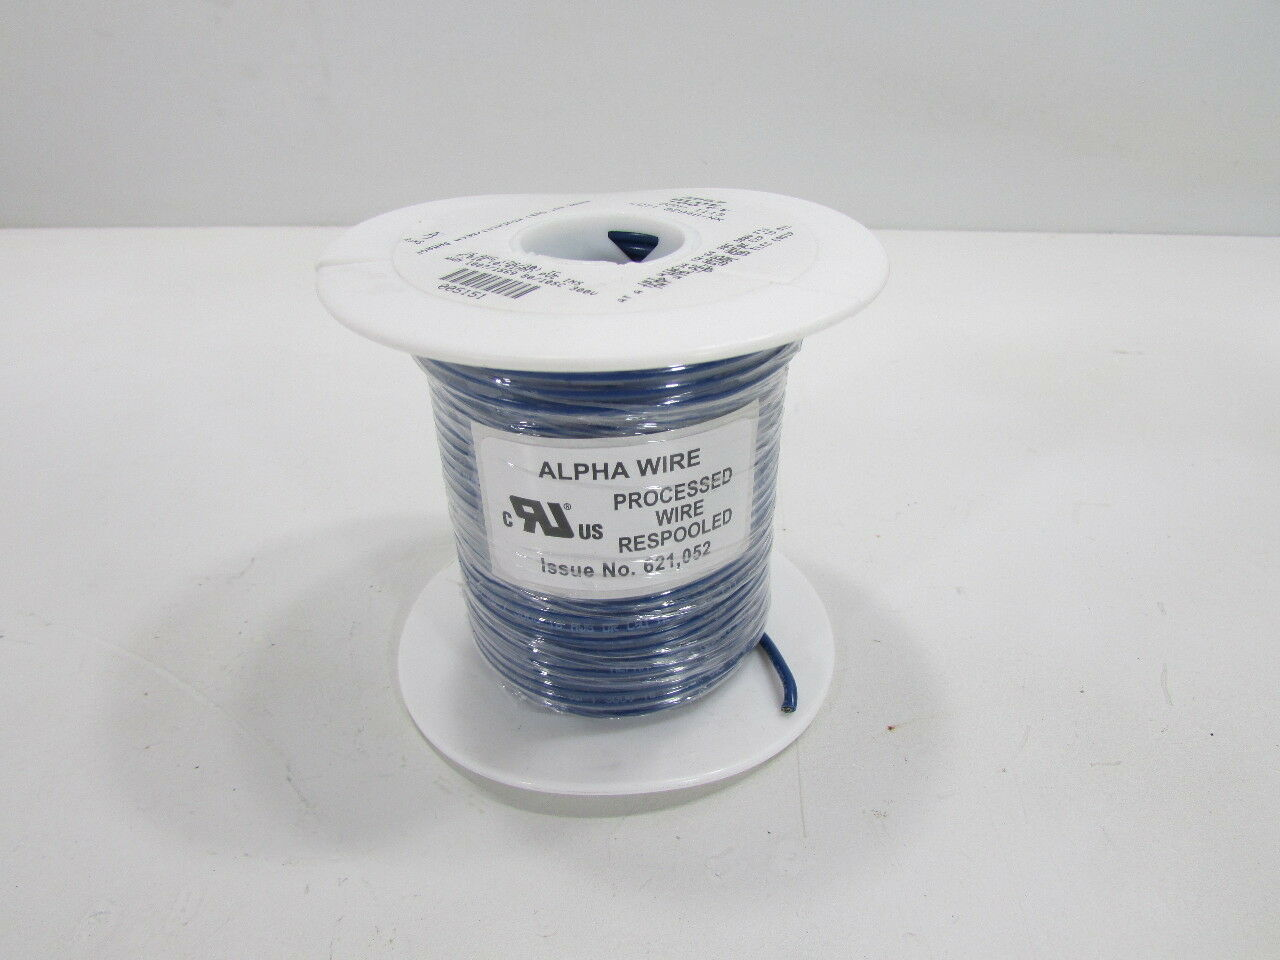 NEW ALPHA WIRE  3057 BL005  HOOK-UP WIRE, 100FT, 16AWG, CU, blueE RESPOOLED